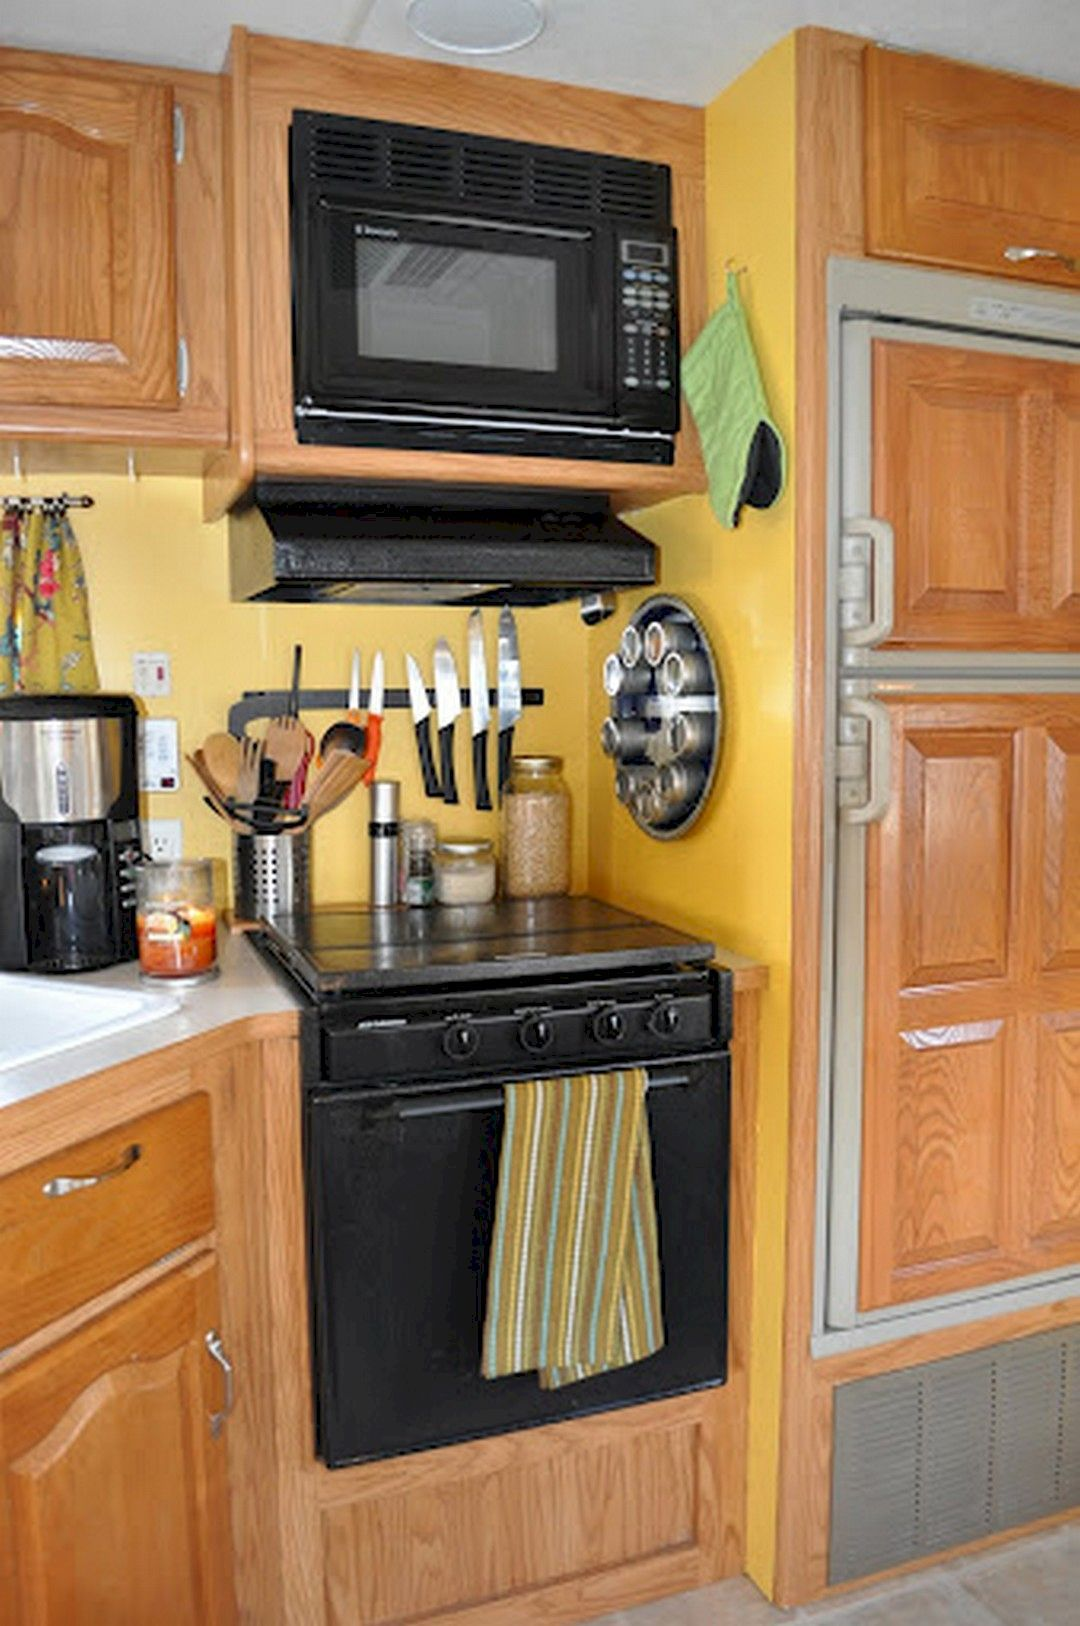 Tips And Tricks Camper Trailers Travel Organization 30 Ideas Camper Organization Travel Trailers Camping Trailer Rv Kitchen Organization